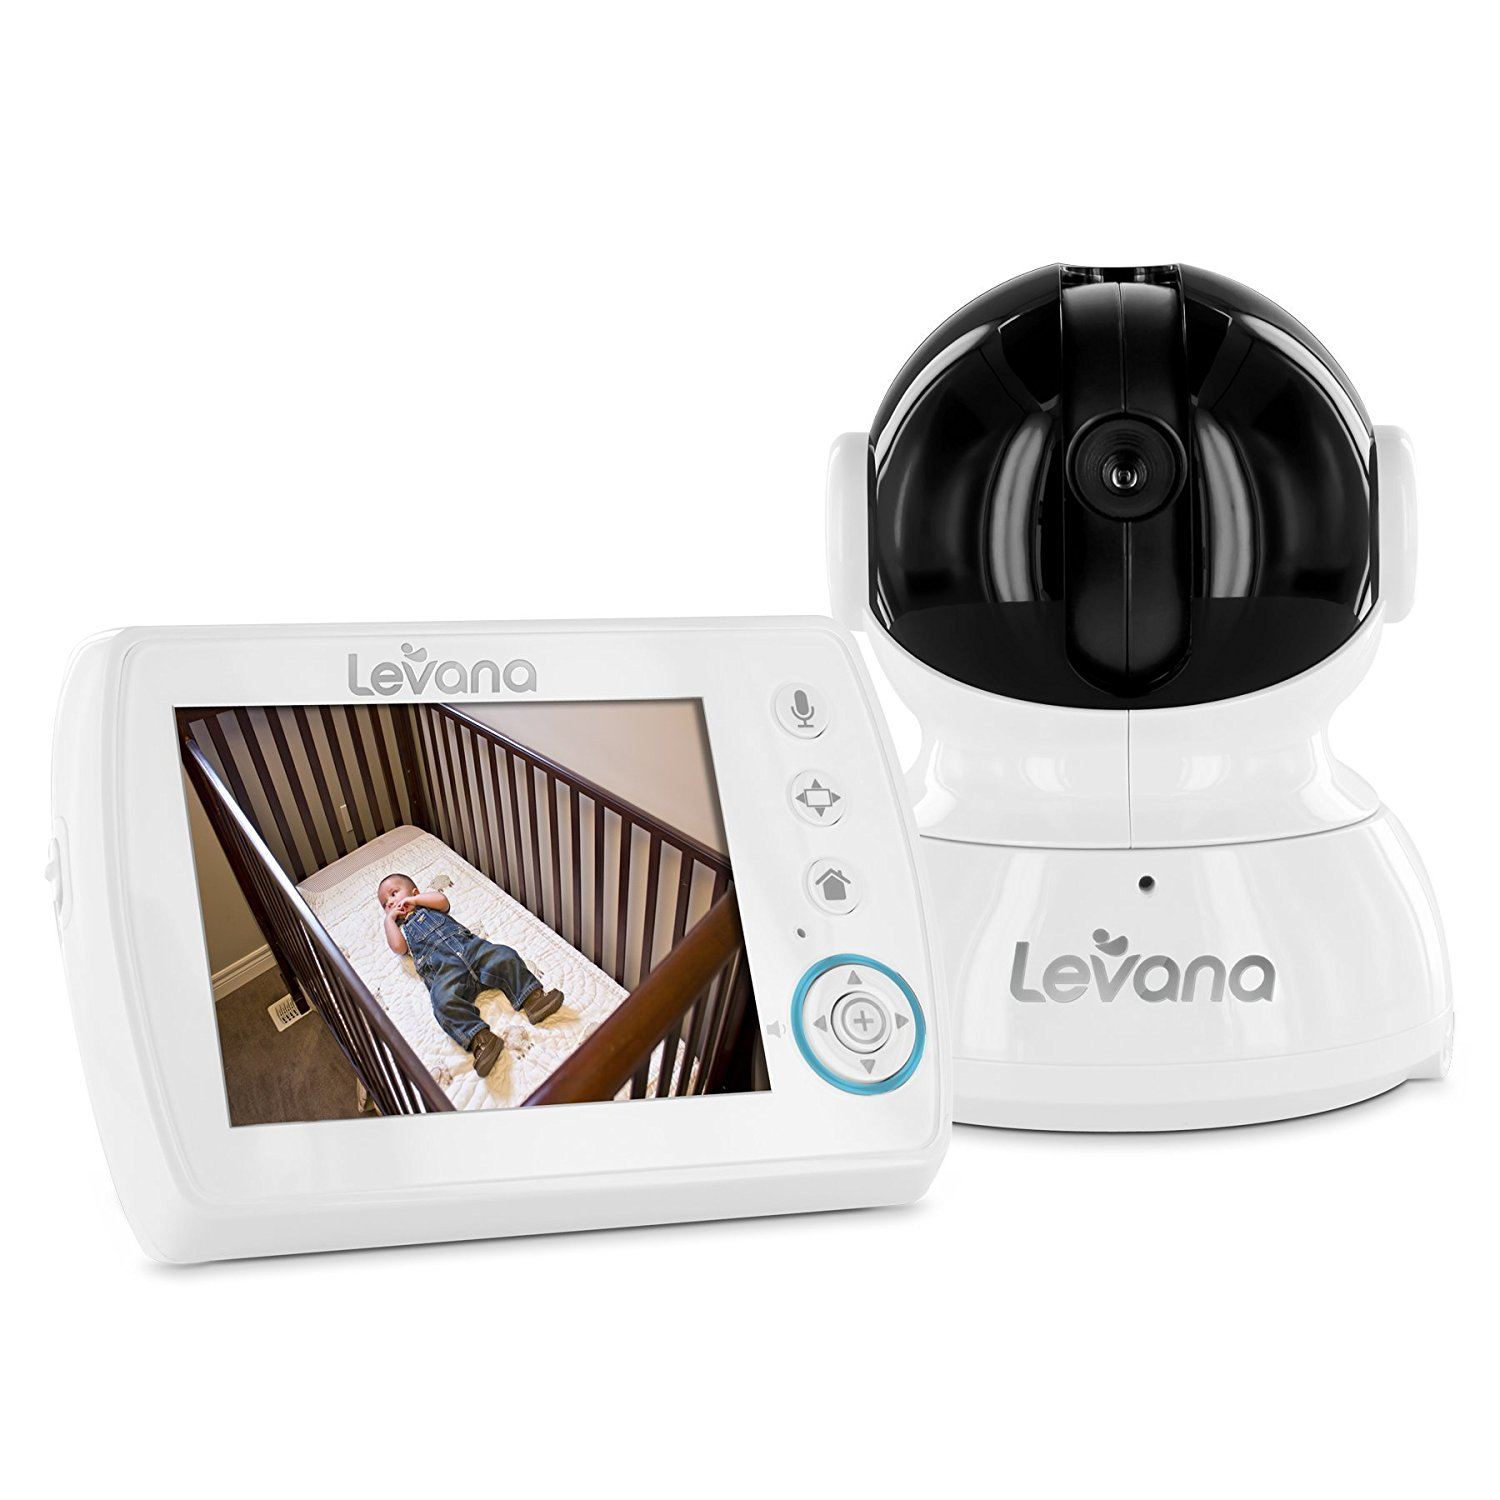 Levana Astra Digital Baby Video Monitor